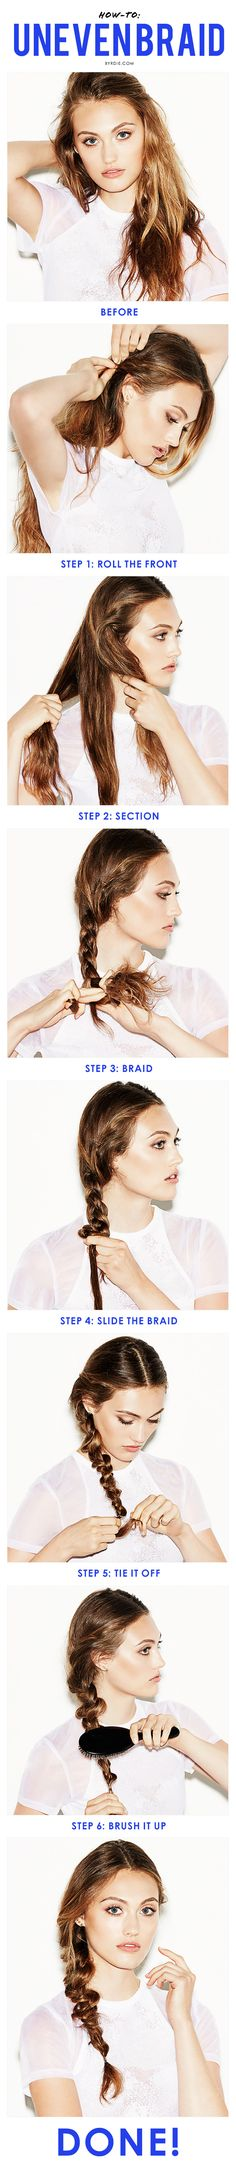 How to create a textured uneven braid (and look totally chic) // #Hair #Tutorial